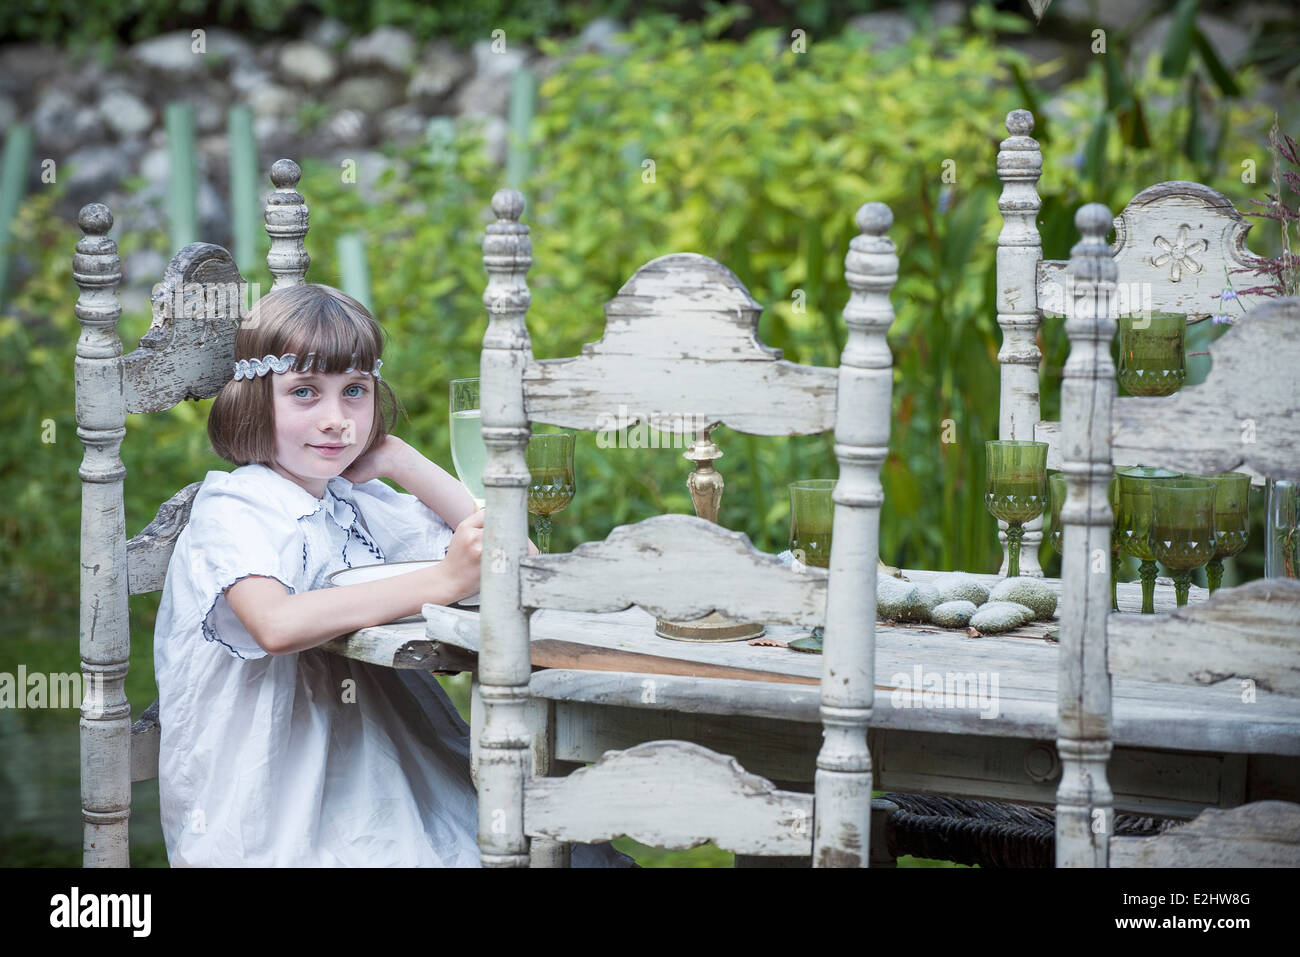 Girl sitting at dining table outdoors - Stock Image